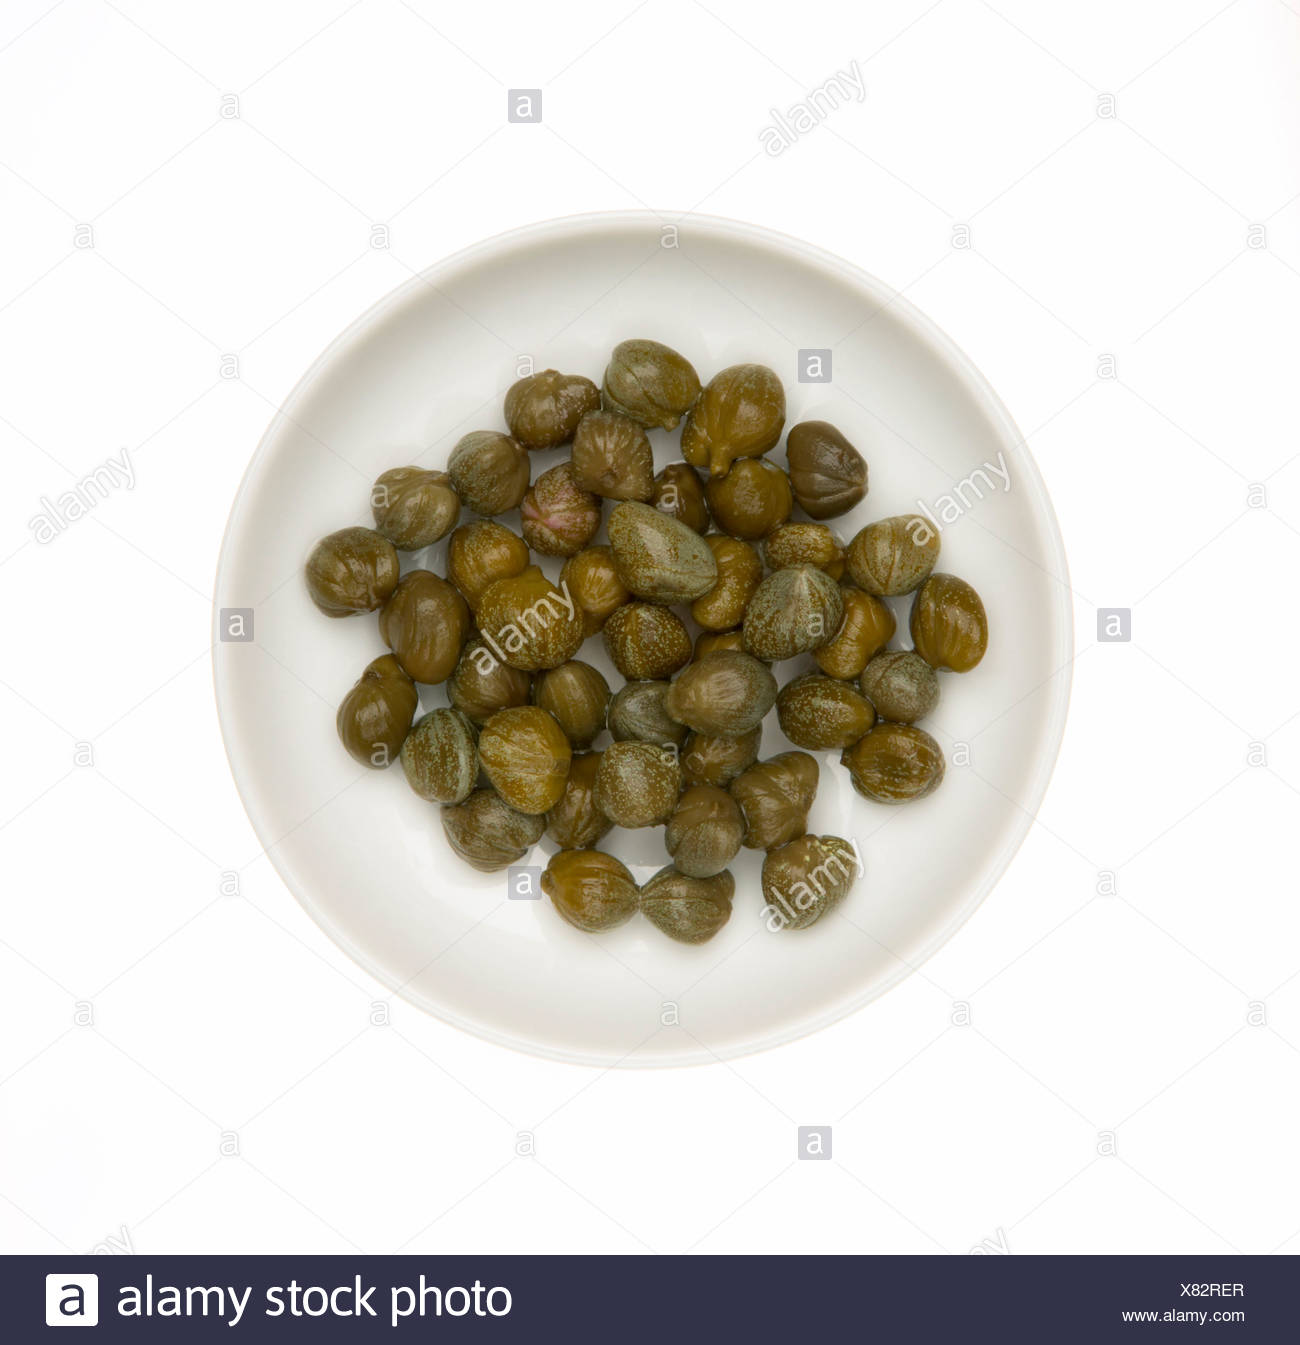 Capers on dish, elevated view - Stock Image